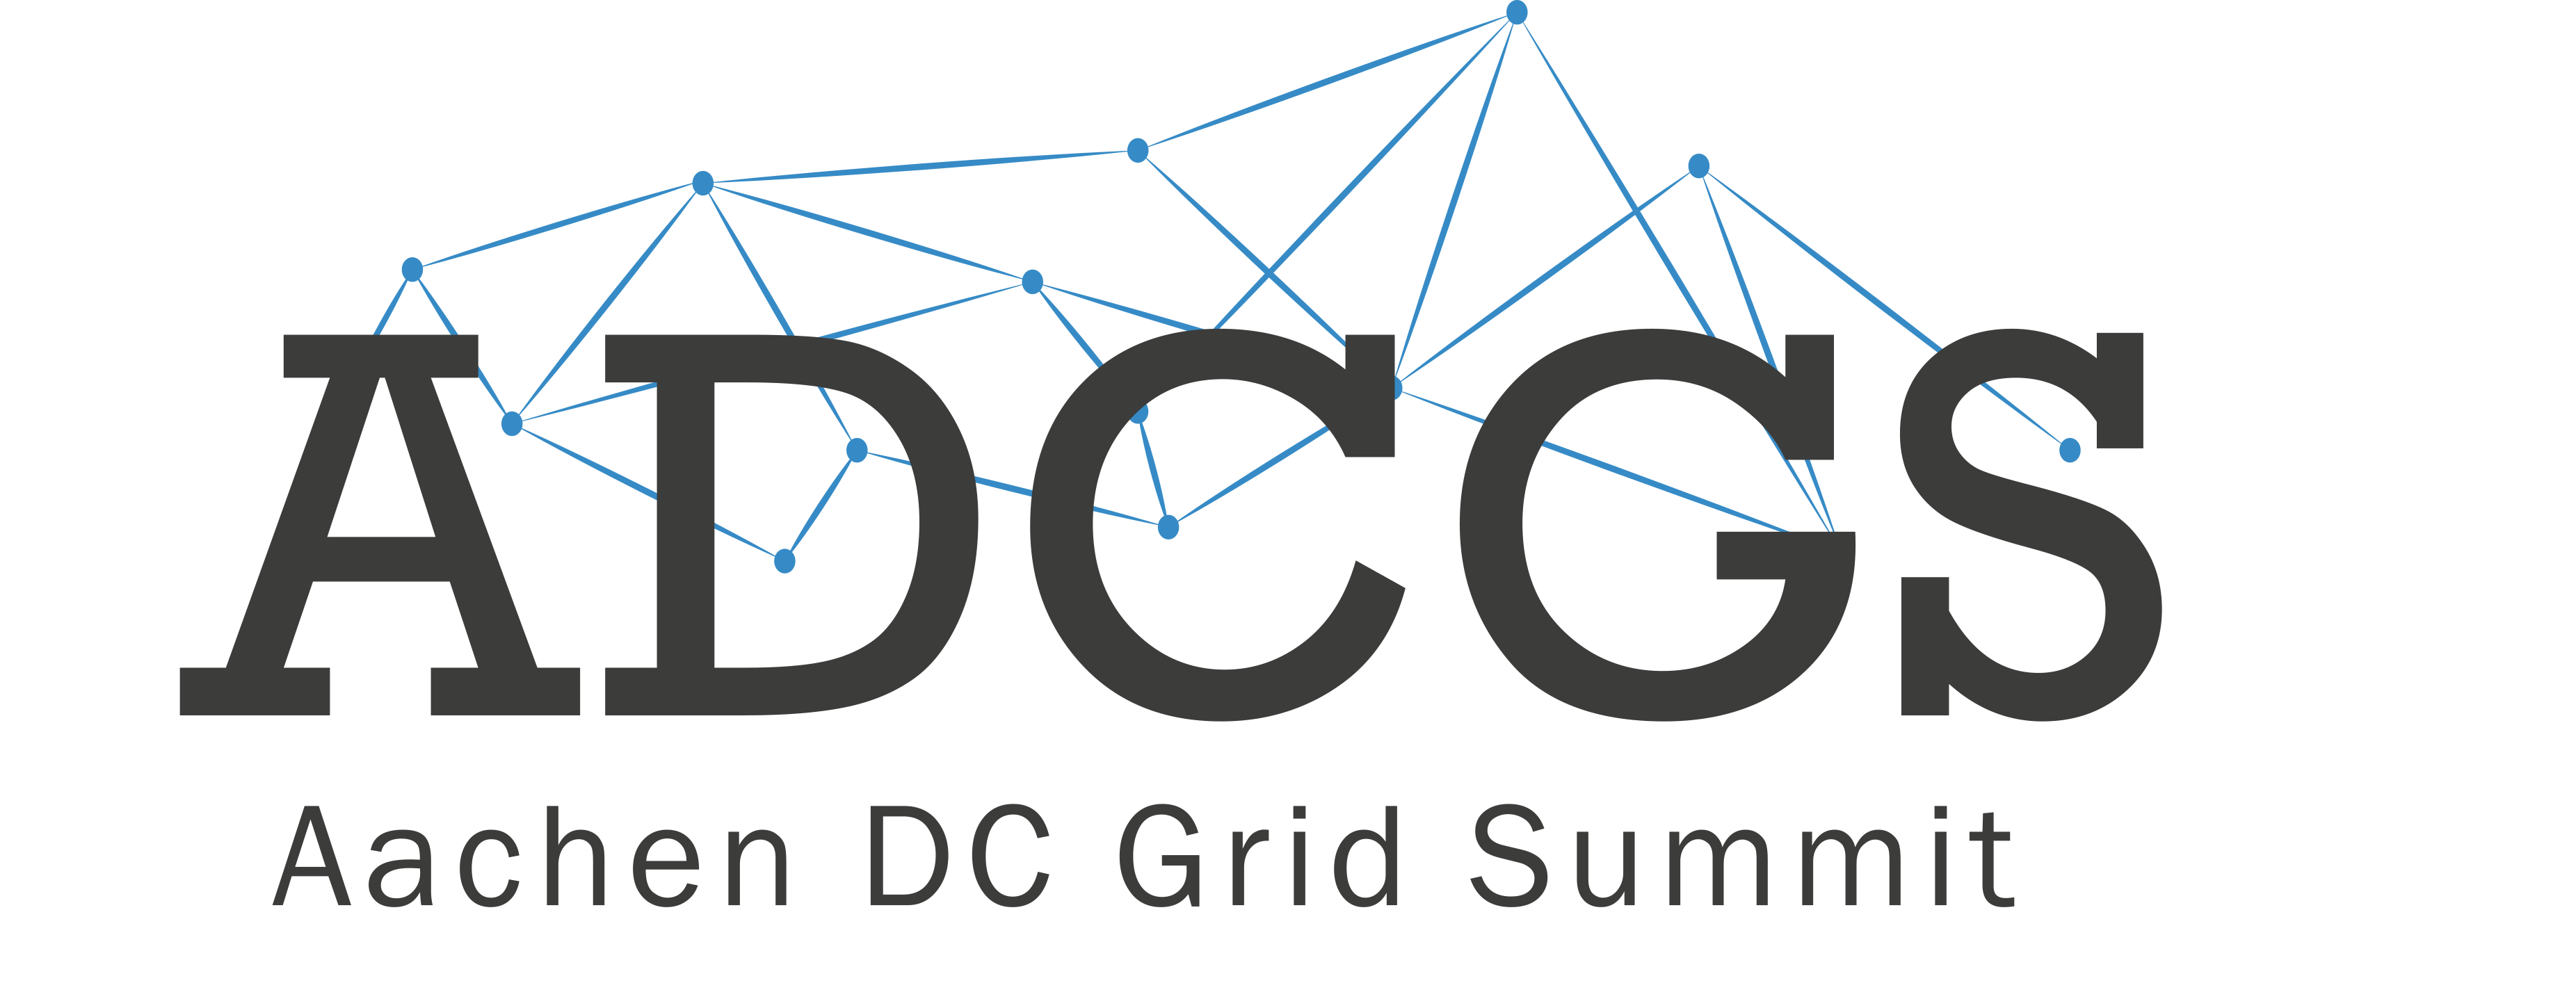 Aachen DC Grid Summit Sticky Logo